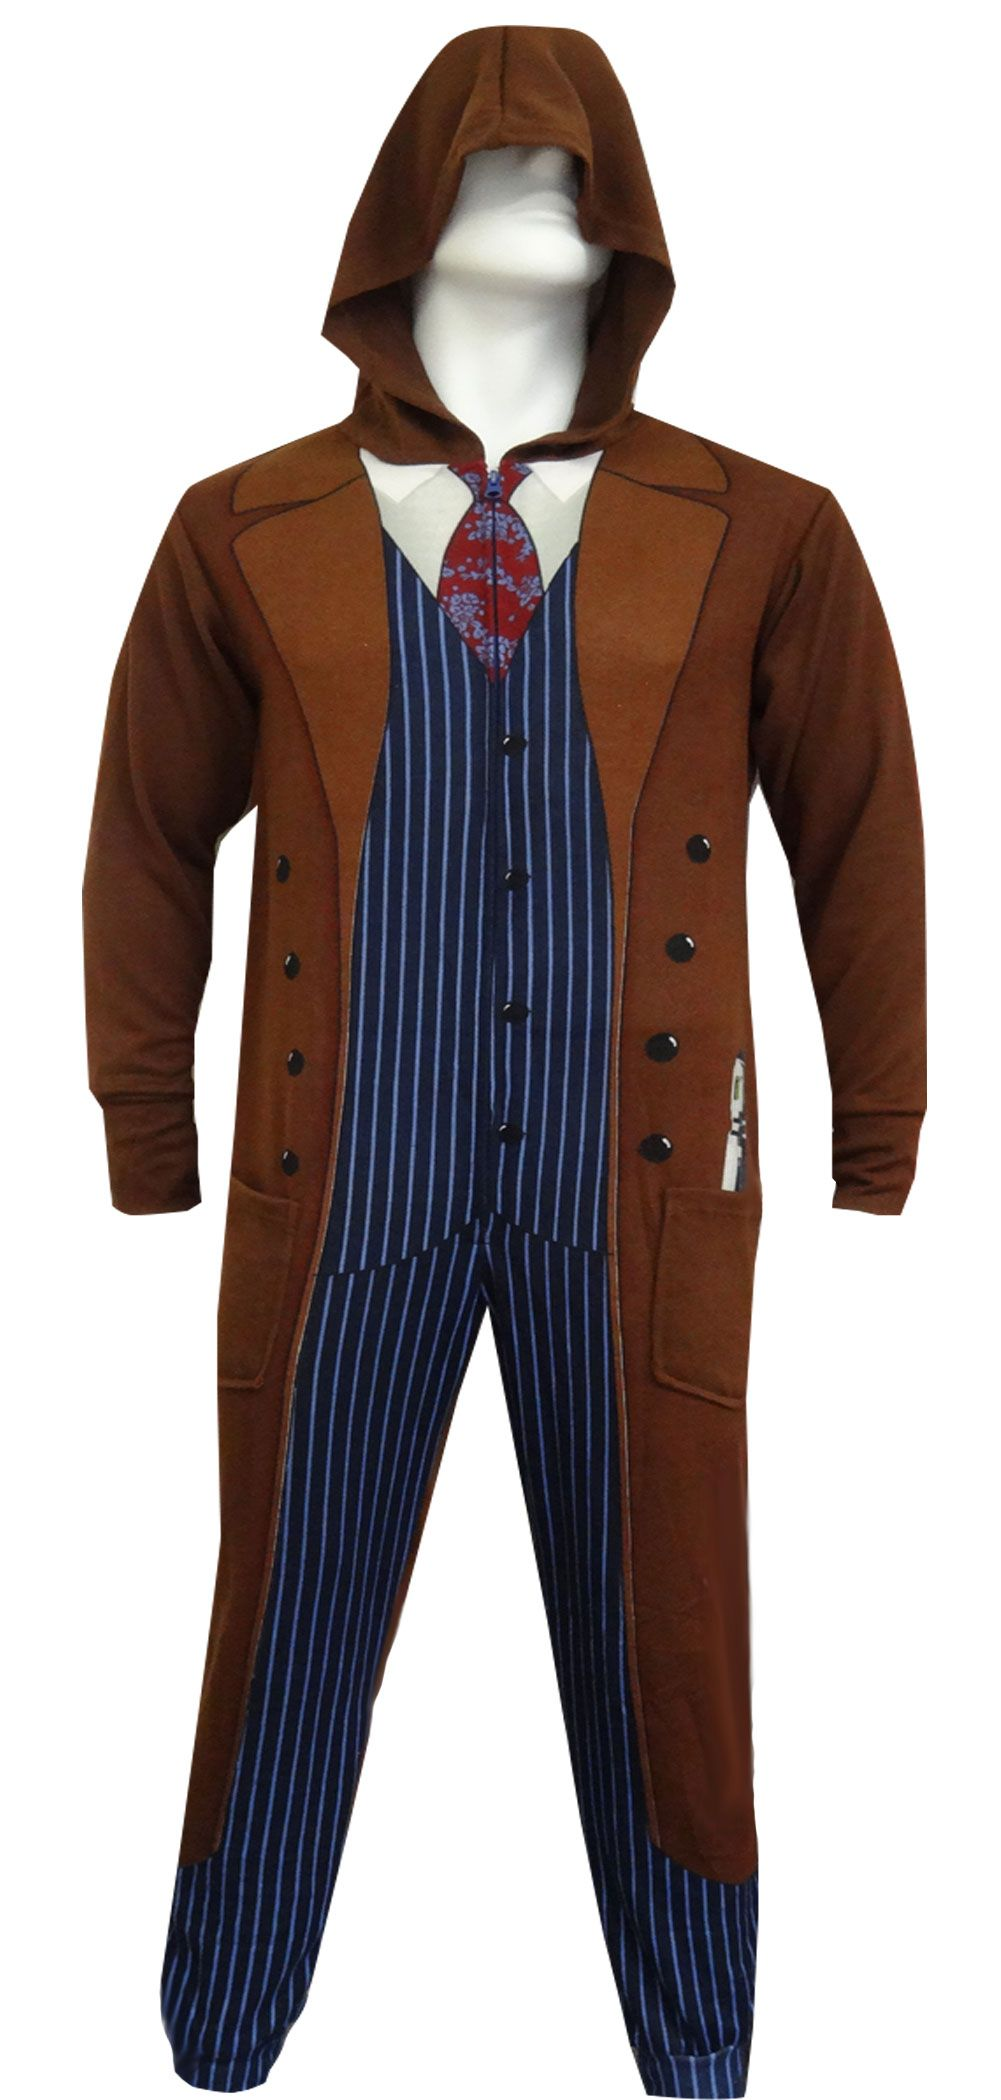 1a74057a139e WebUndies.com Dr. Who 10th Doctor Hooded Onesie Lounger Pajama ...